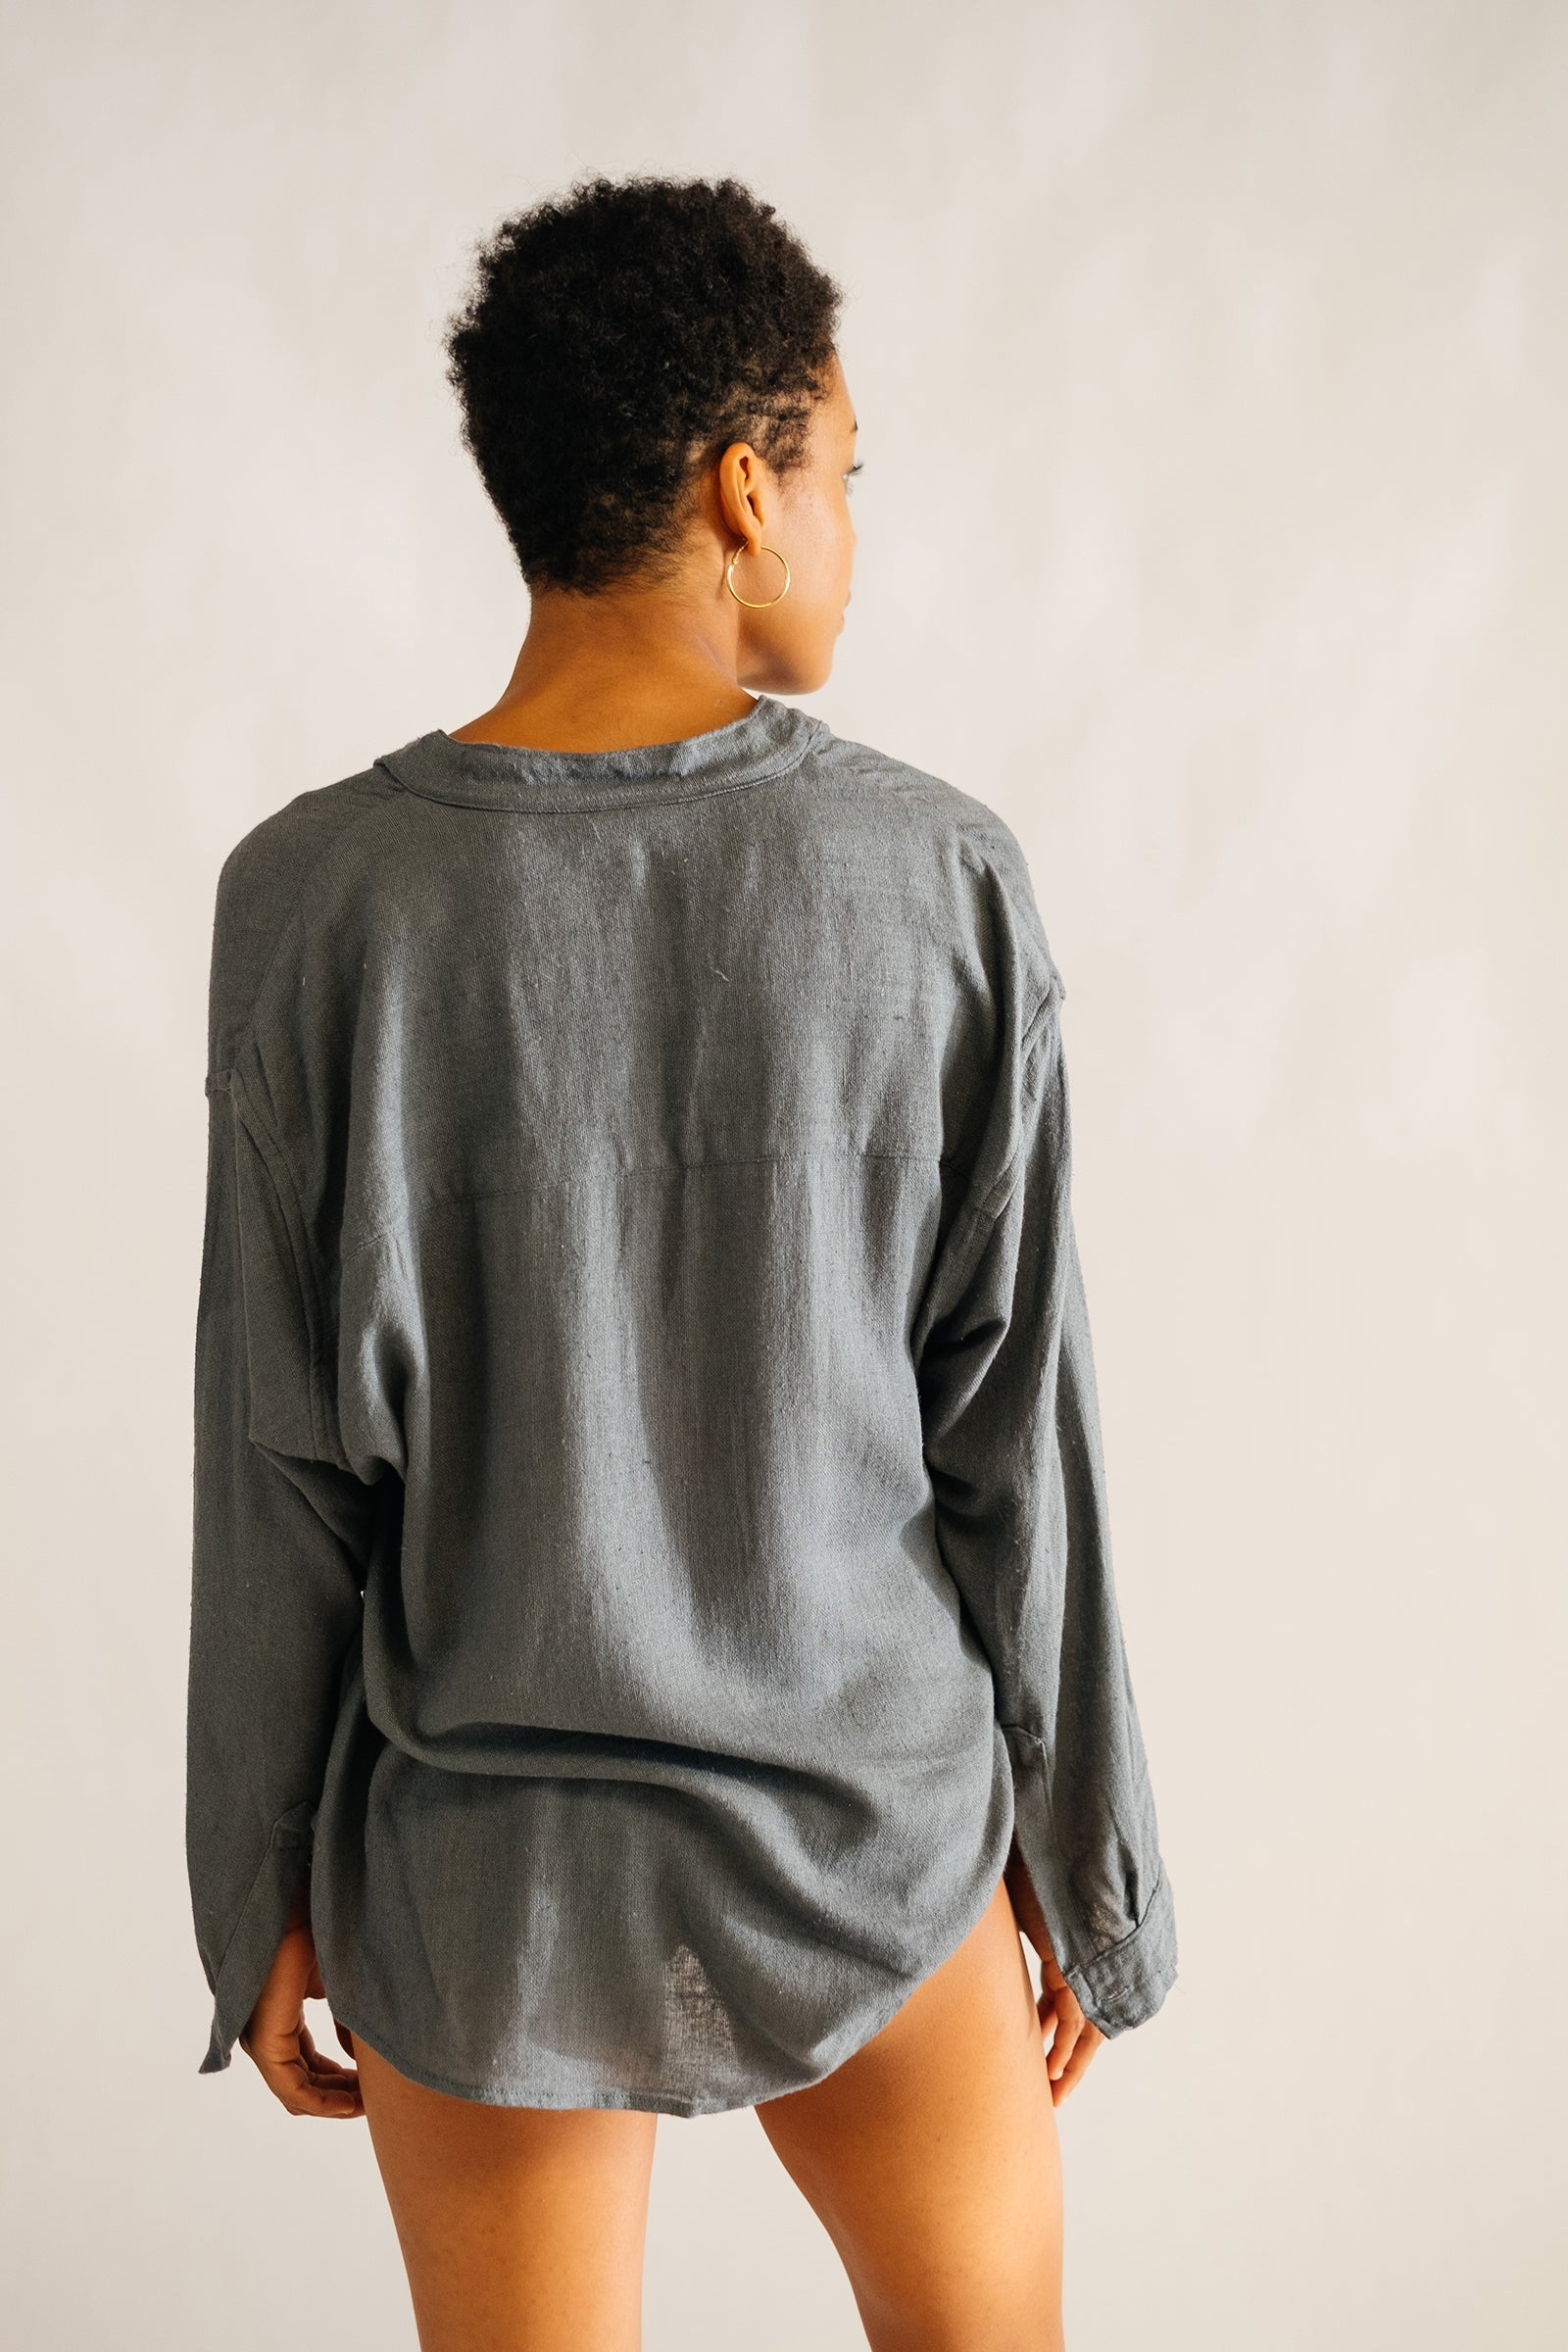 The Silk co. | Rummy Button Shirt| Sustainable Raw Silk Clothing - The Silk Co Byron Bay